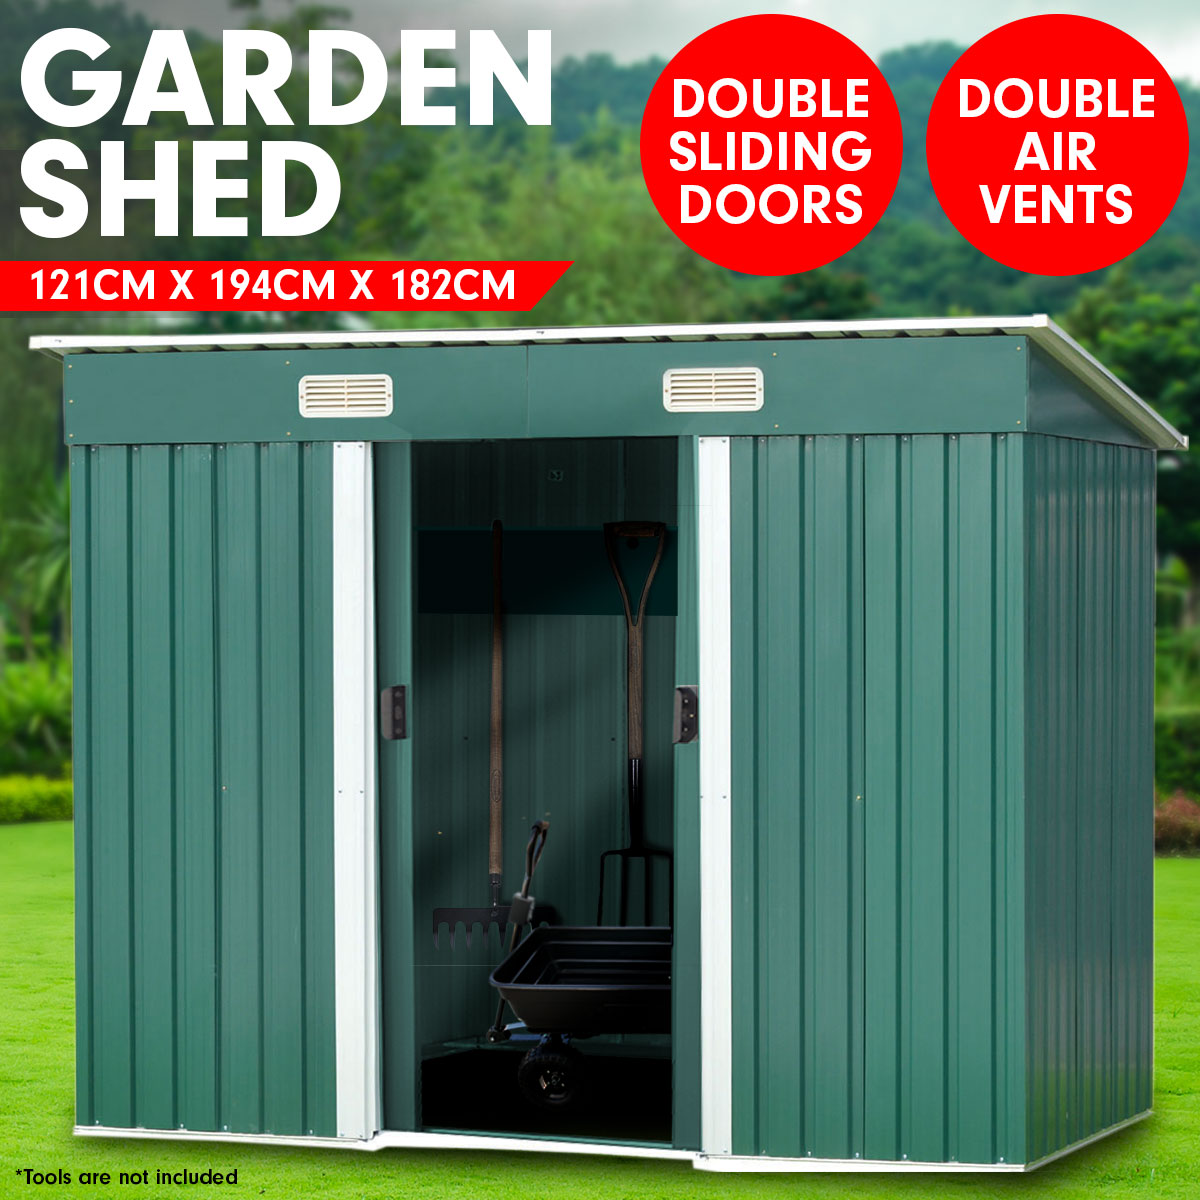 Garden Shed Flat 4ft x 6ft Outdoor Storage Shelter - Green